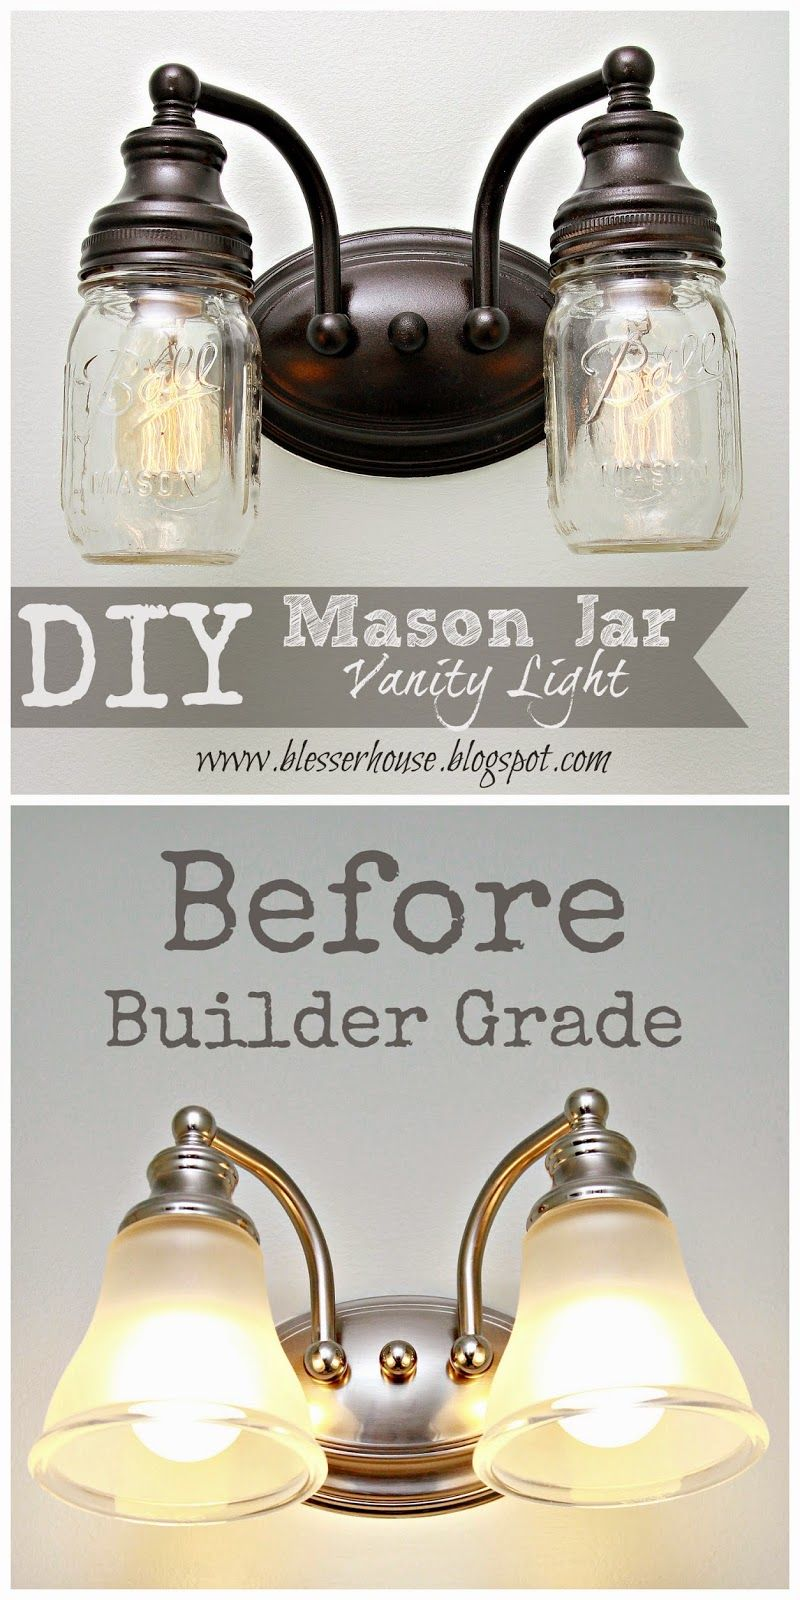 Mason Jar Bathroom Light Diy Mason Jar Vanity Light 1 Bathrooms Bathroom Mirrors Diy